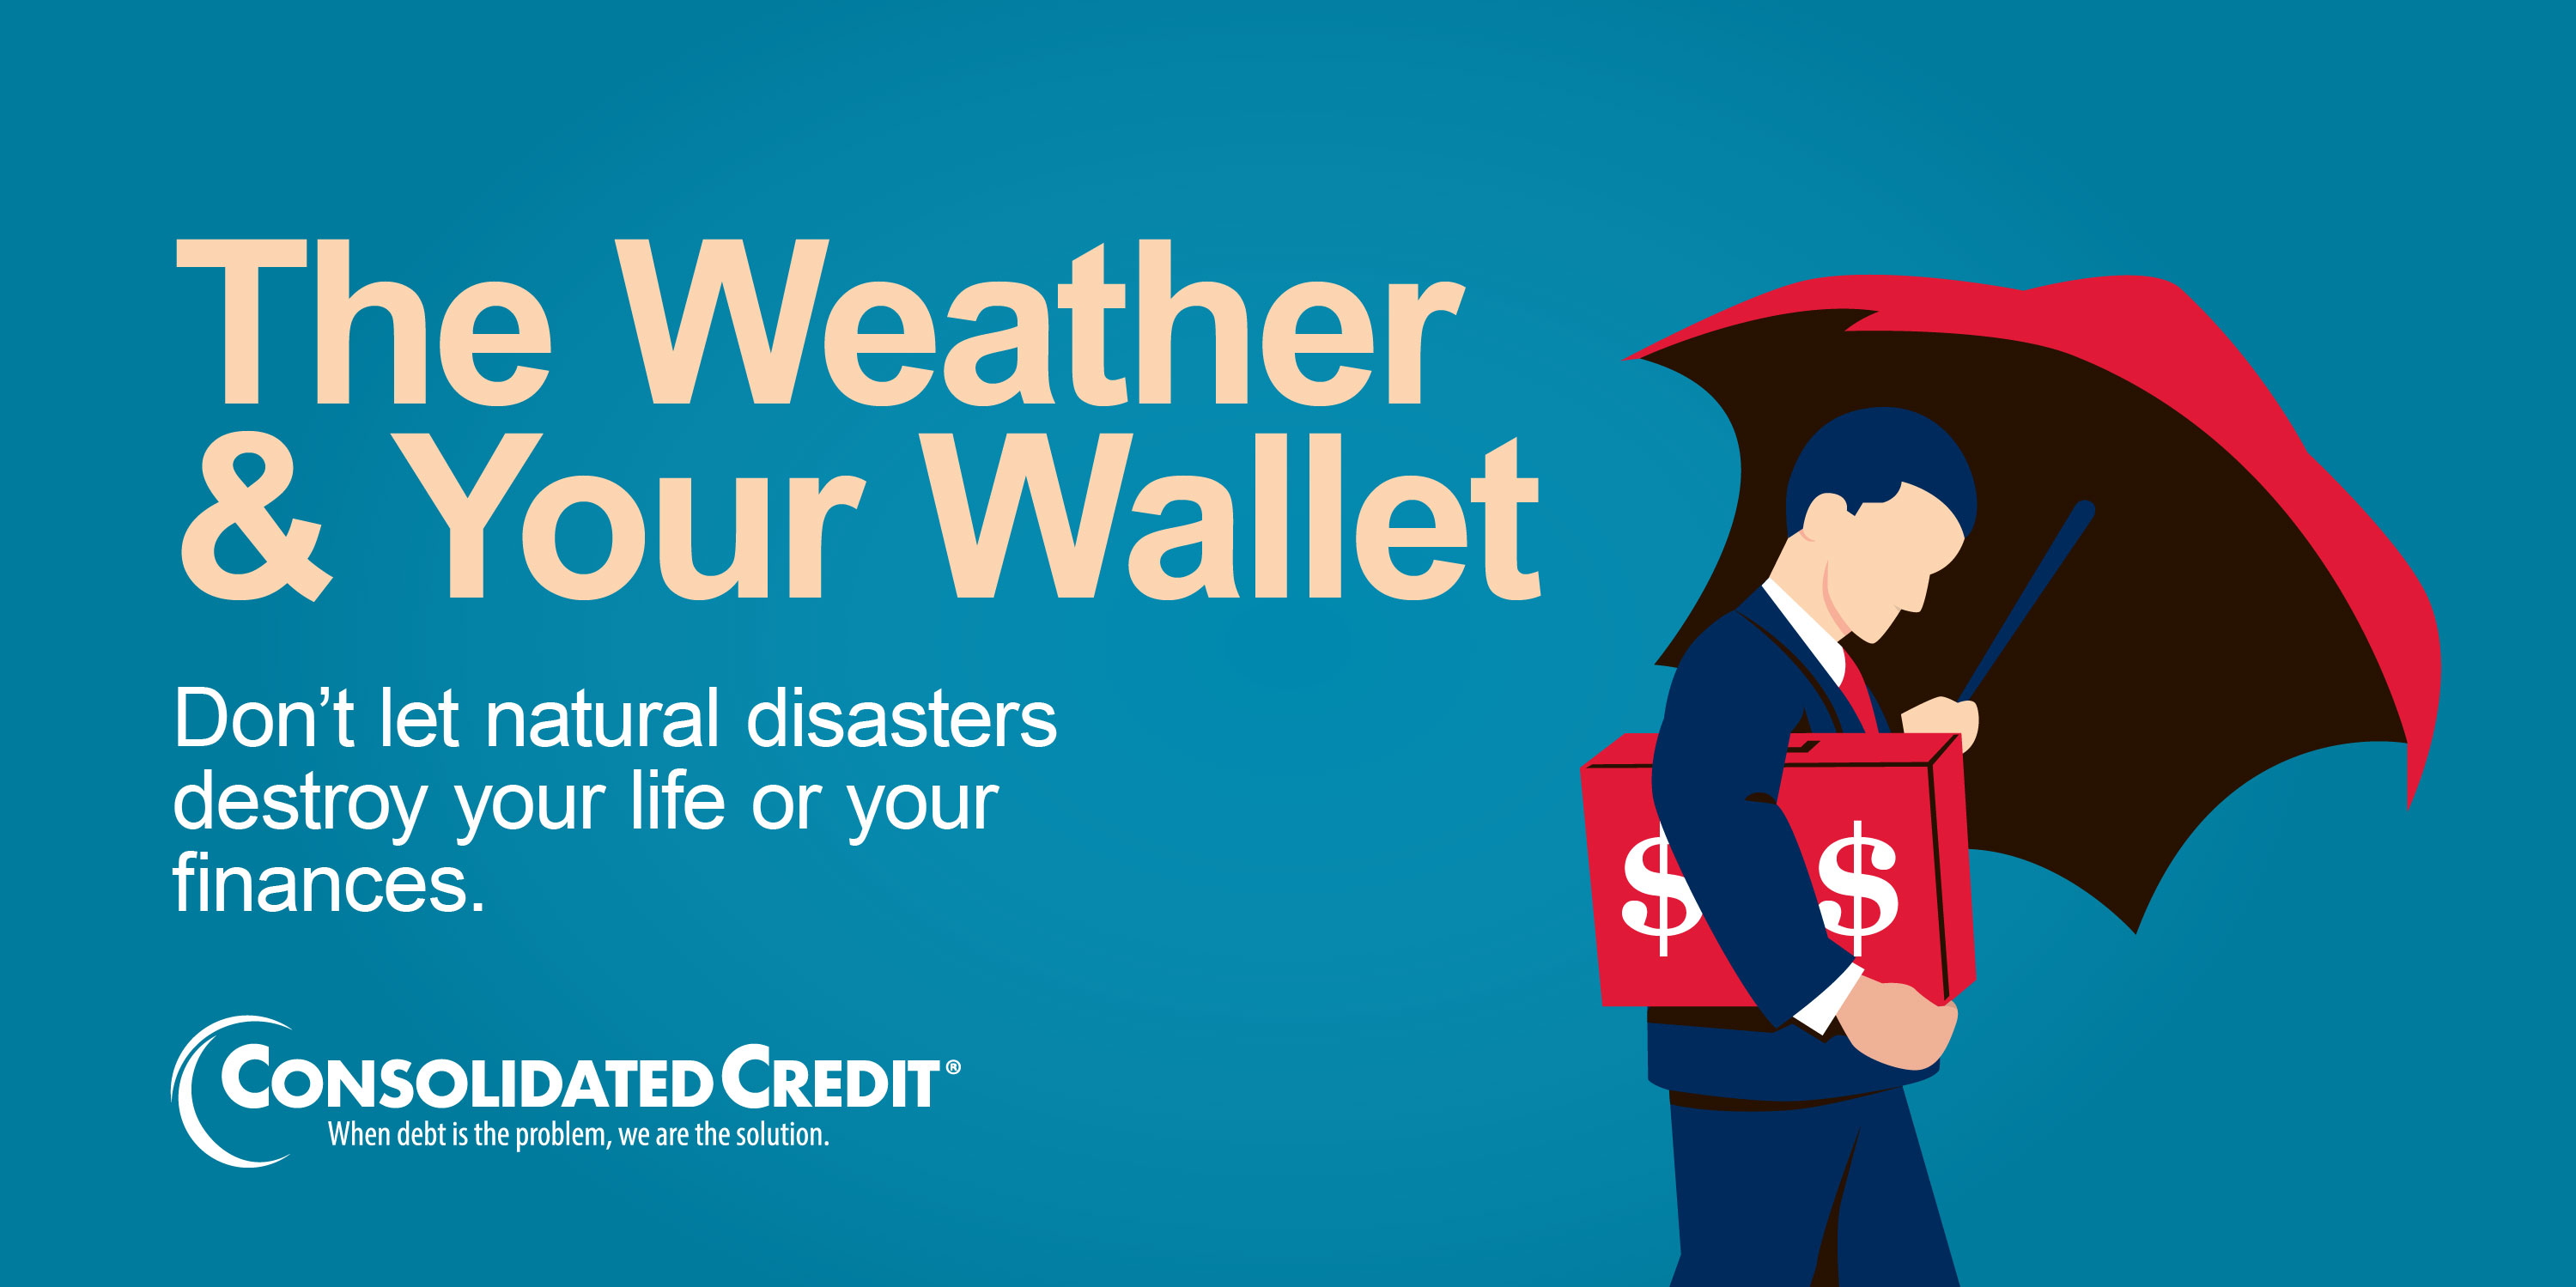 The Weather and Your Wallet - Don't let natural disasters destroy your life or your finances